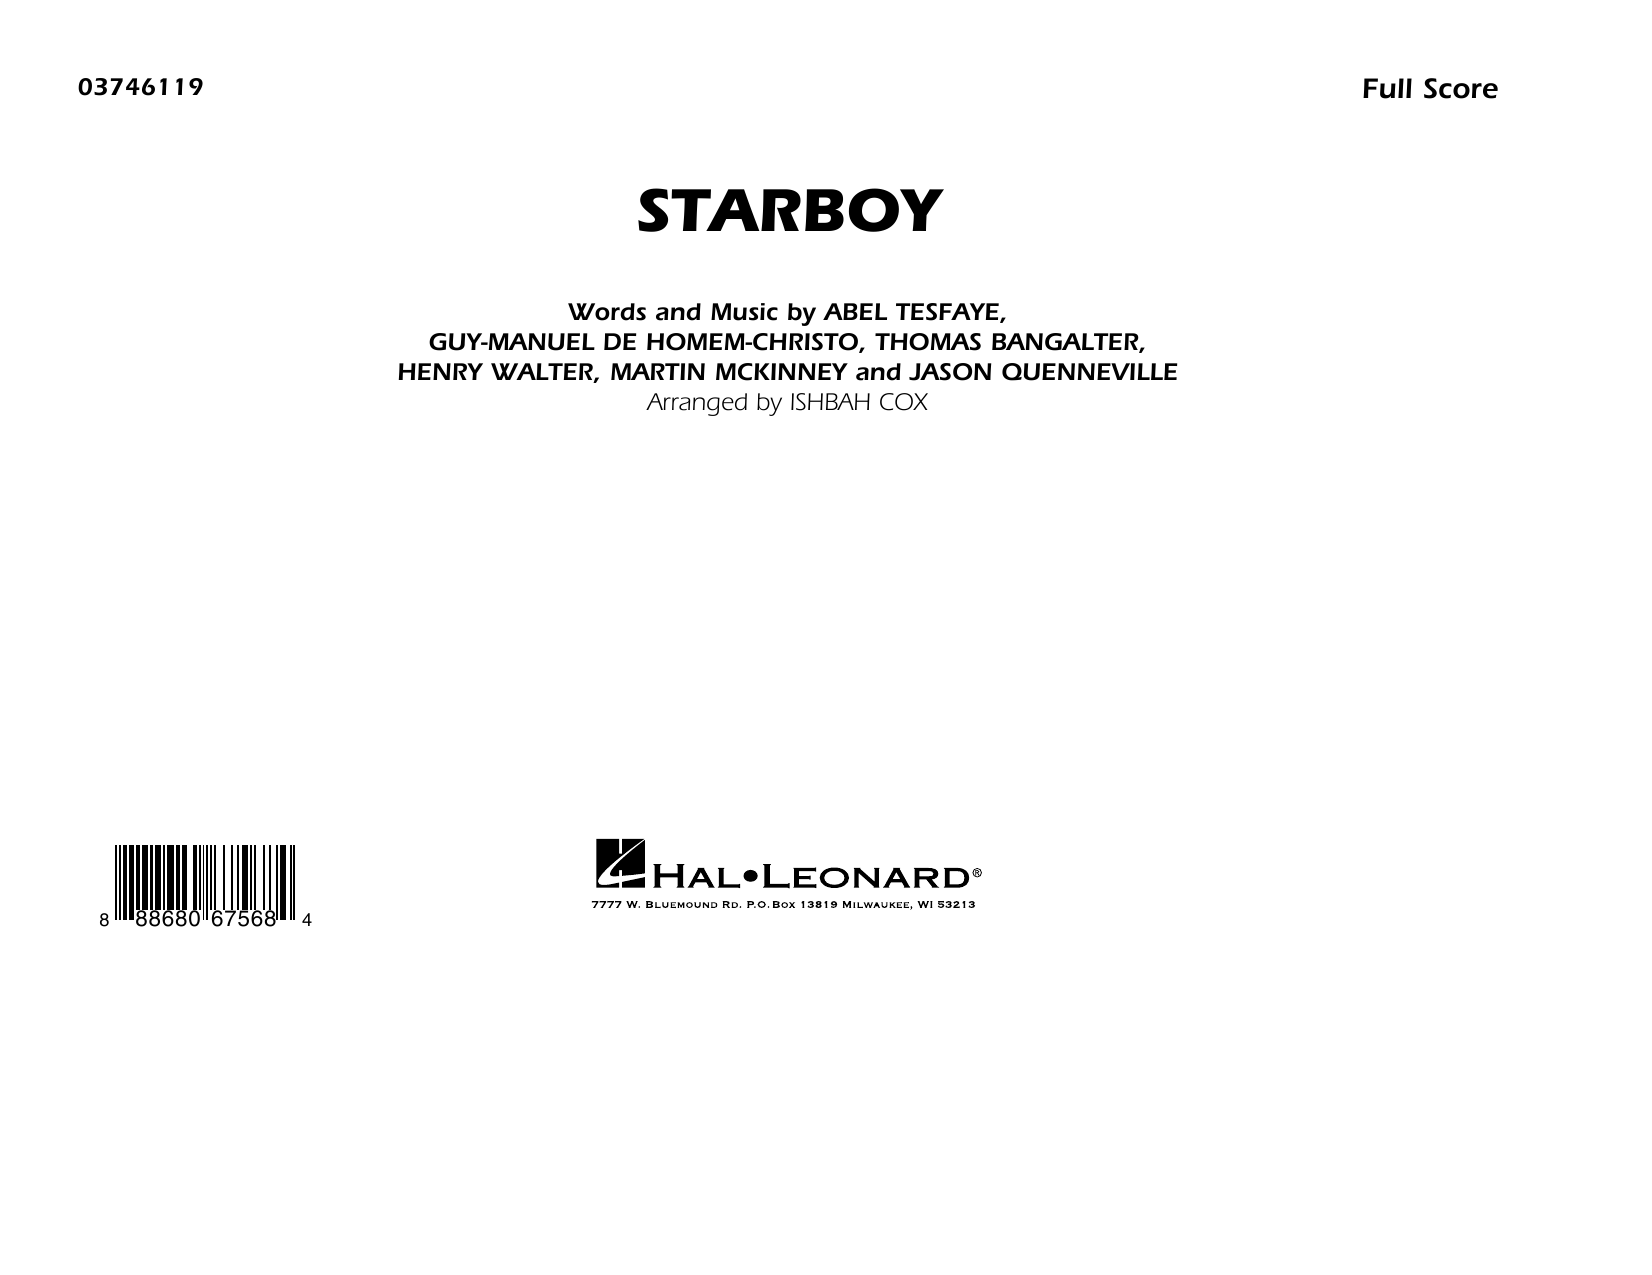 Starboy (COMPLETE) sheet music for marching band by Thomas Bangalter, Guy-Manuel de Homem-Christo, Henry Russell Walter, Ishbah Cox, Jason Quenneville and Martin McKinney. Score Image Preview.